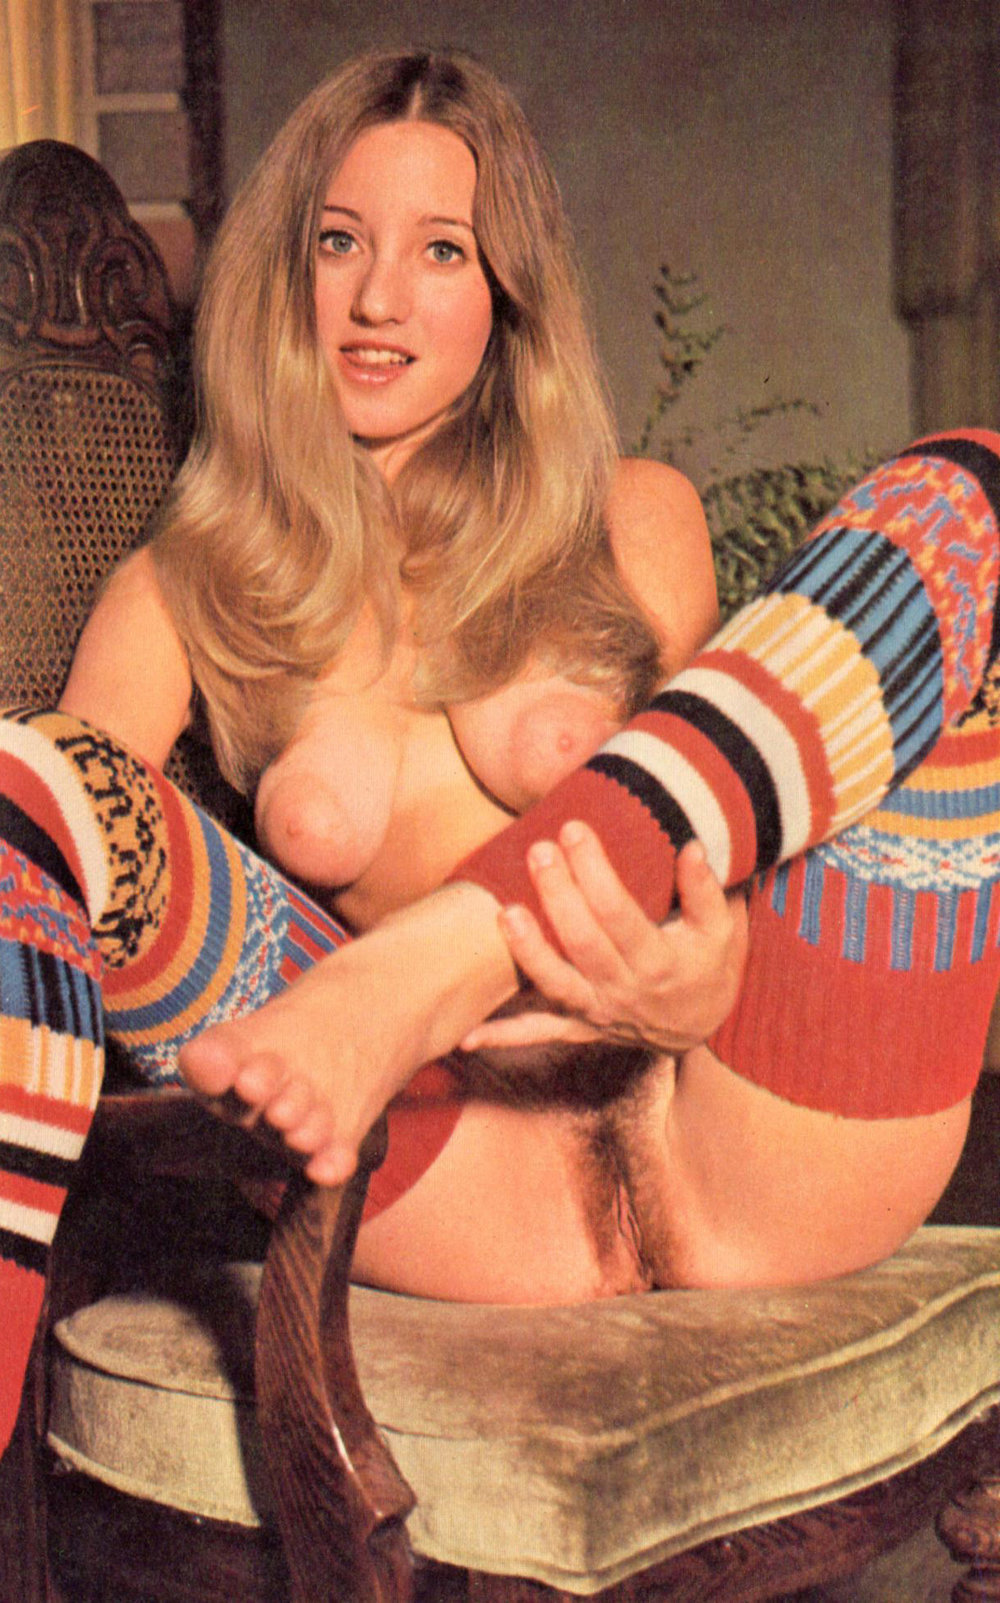 02 Retro Leggings Chick Magazine 1977.jpg